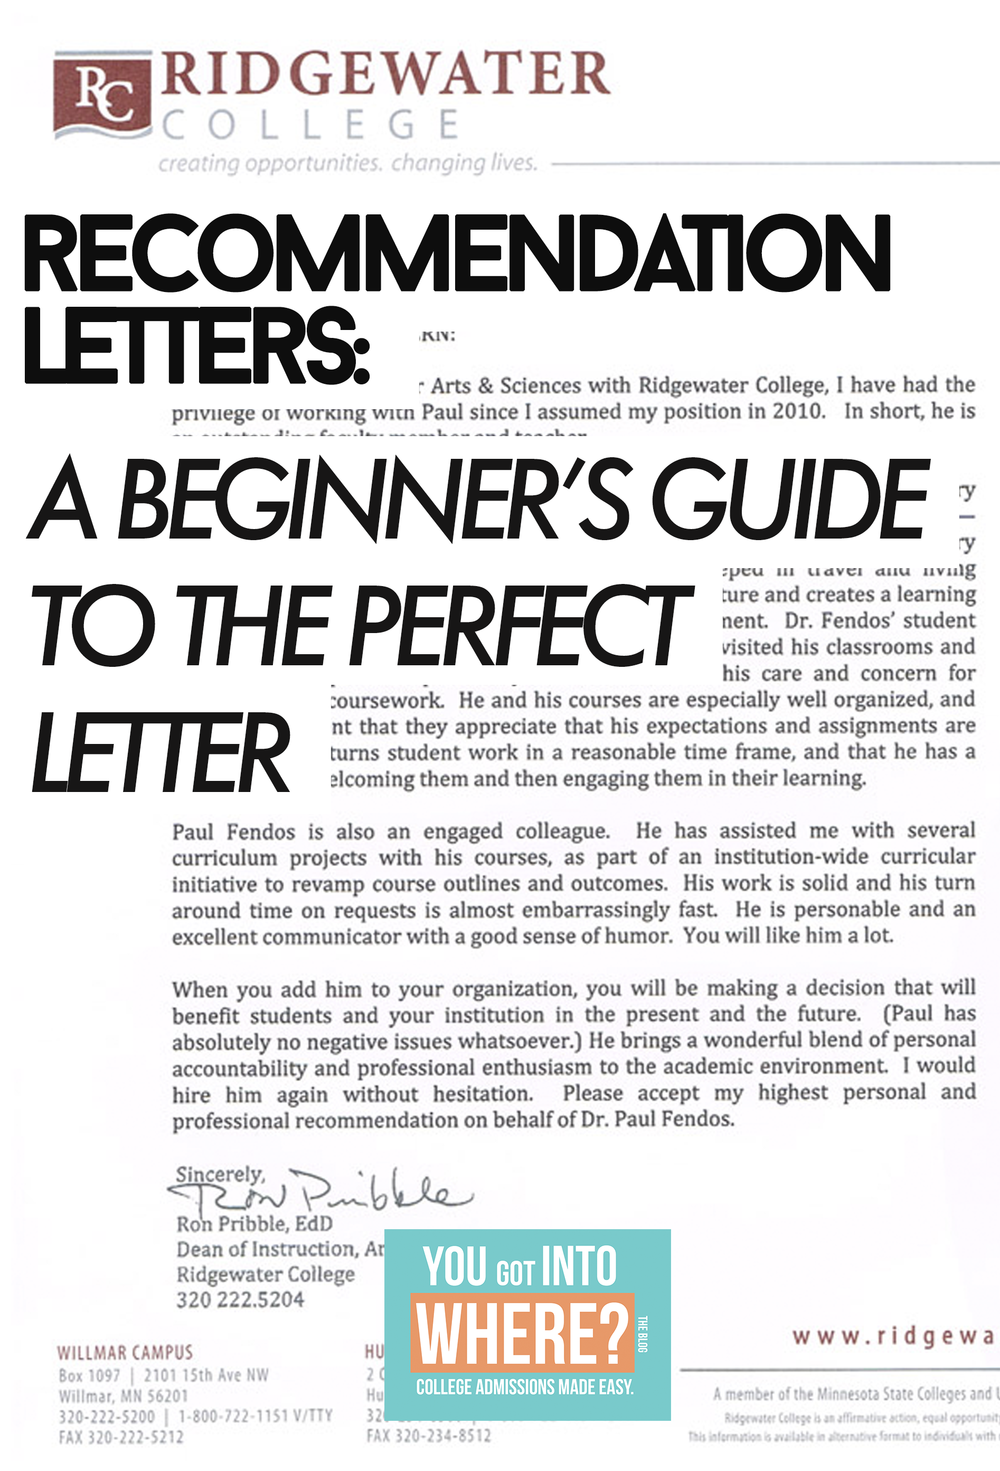 teacher recommendation guide to the perfect letterpng